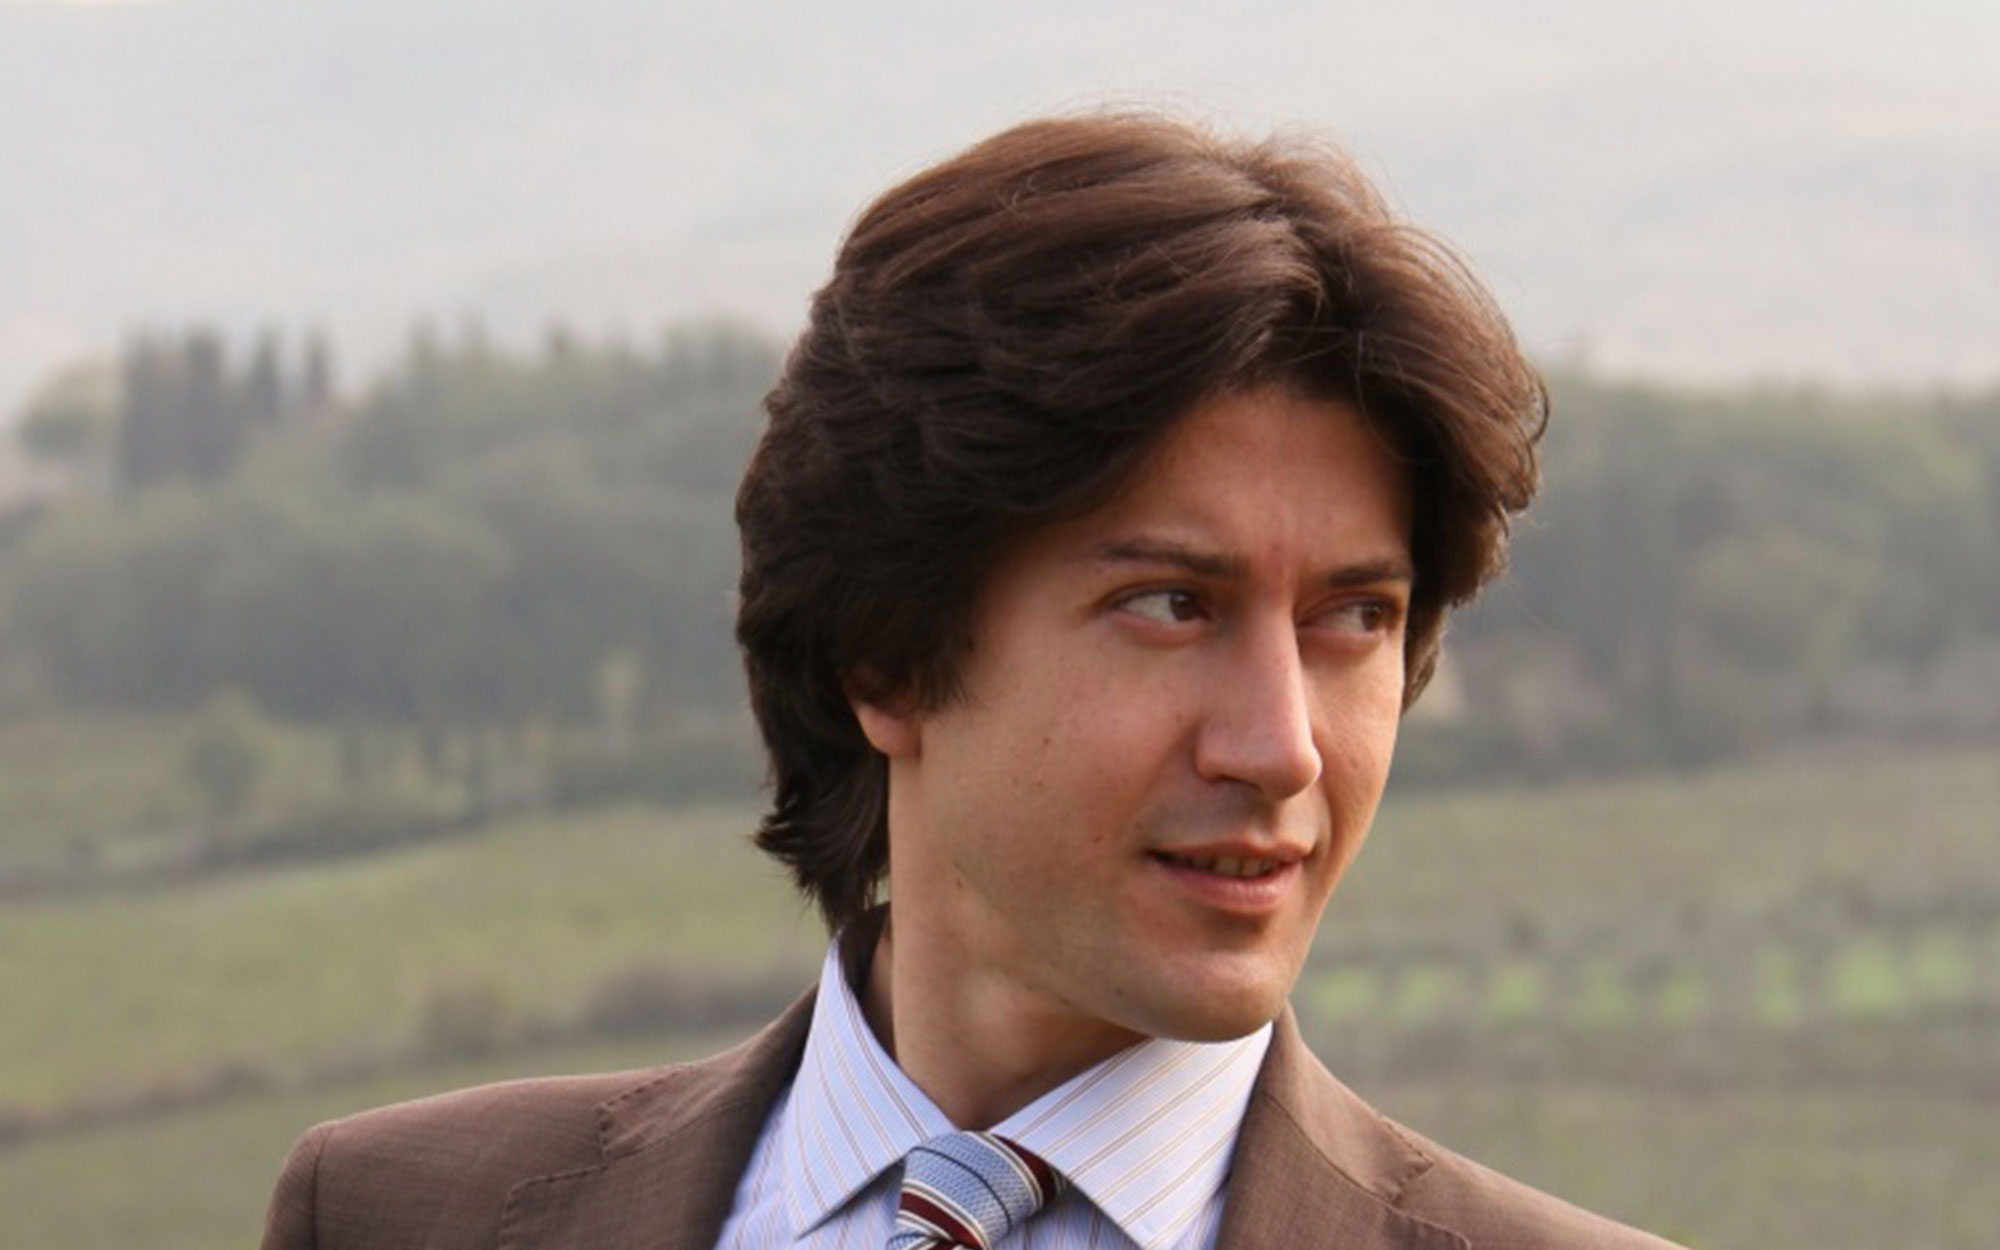 Mr. Marco Bernabei